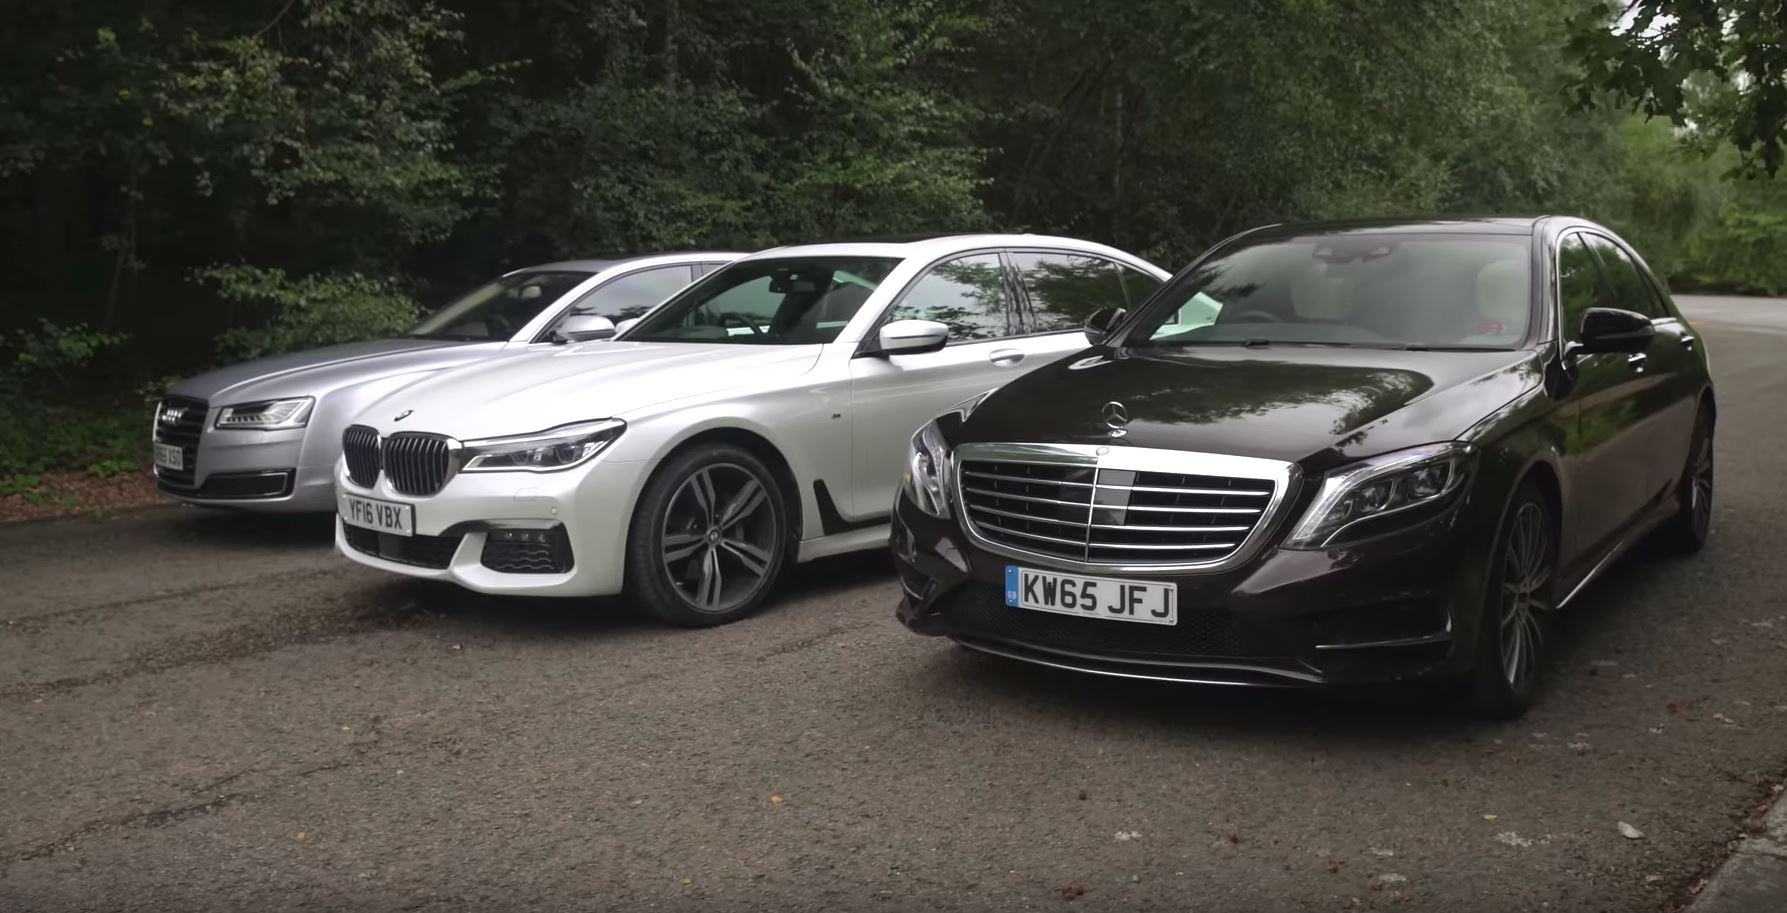 Bmw 7 Series Vs Mercedes S Class Vs Audi A8 2017 Luxury